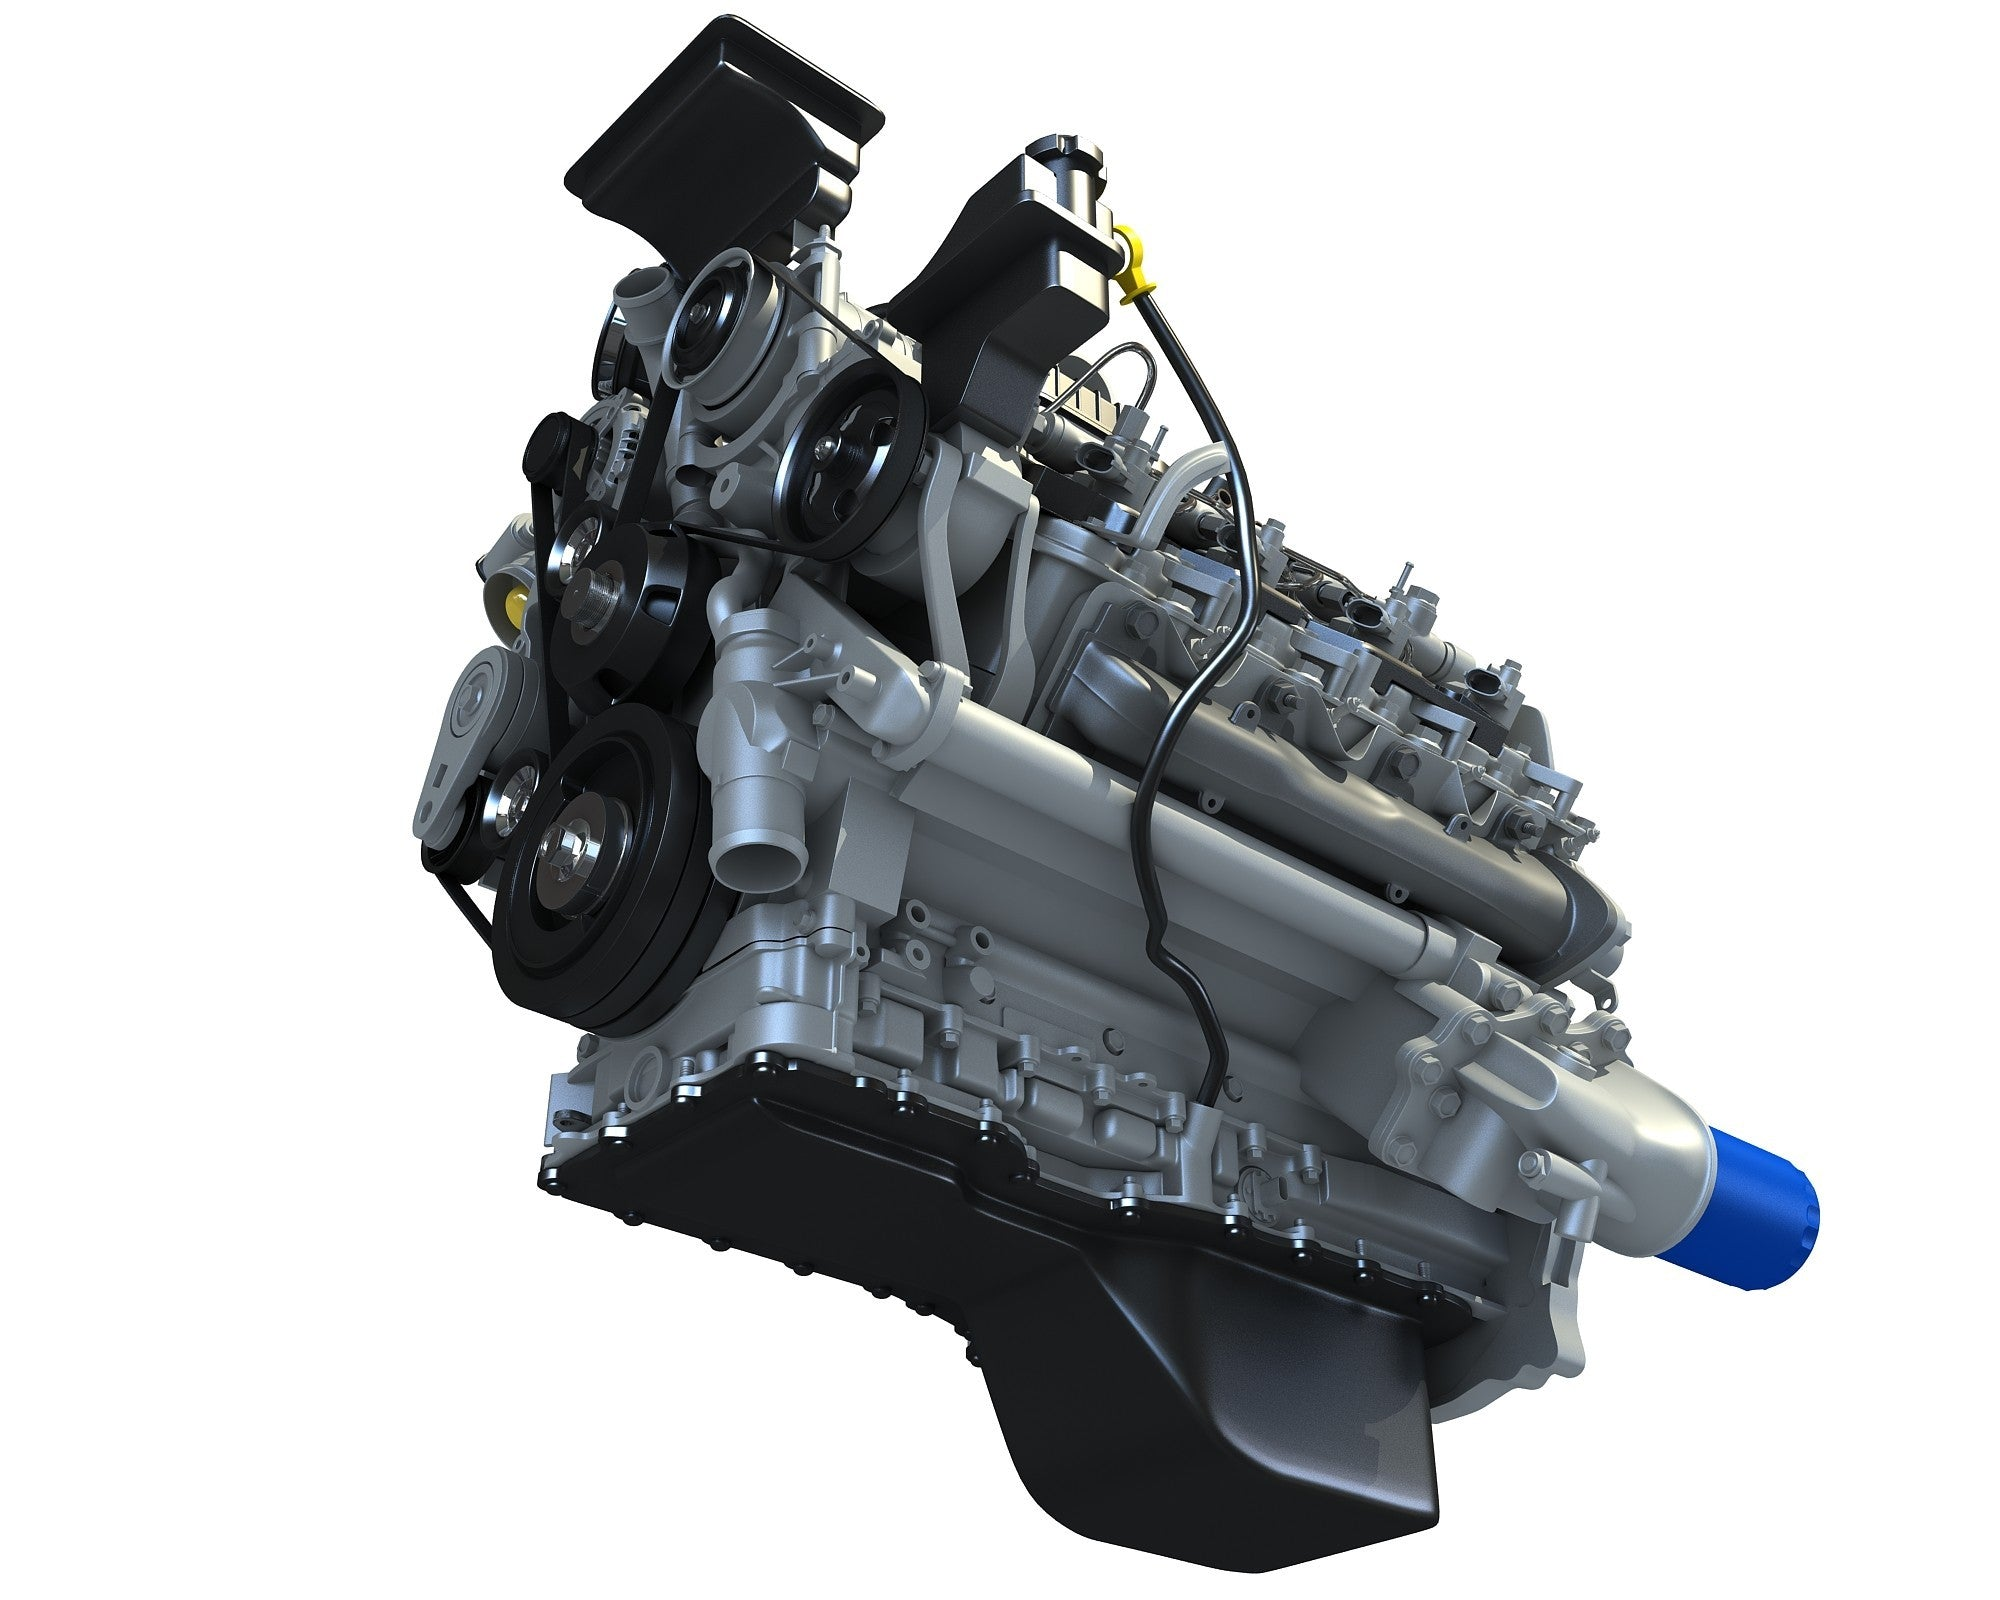 Duramax V8 Turbo Engine